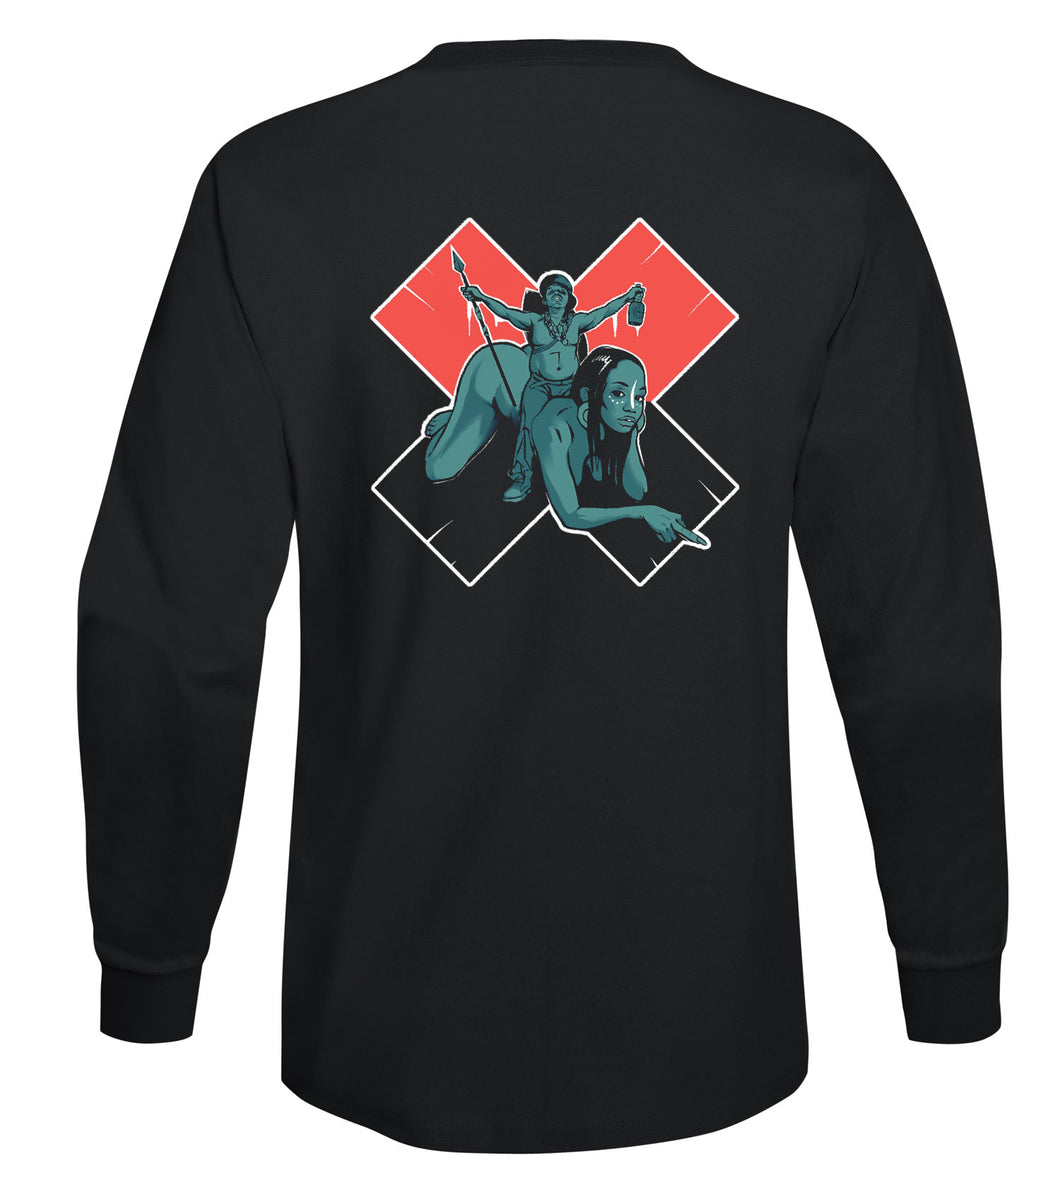 MR. MUTHAFUCKIN' EXQUIRE - RIDIN LONGSLEEVE TSHIRT